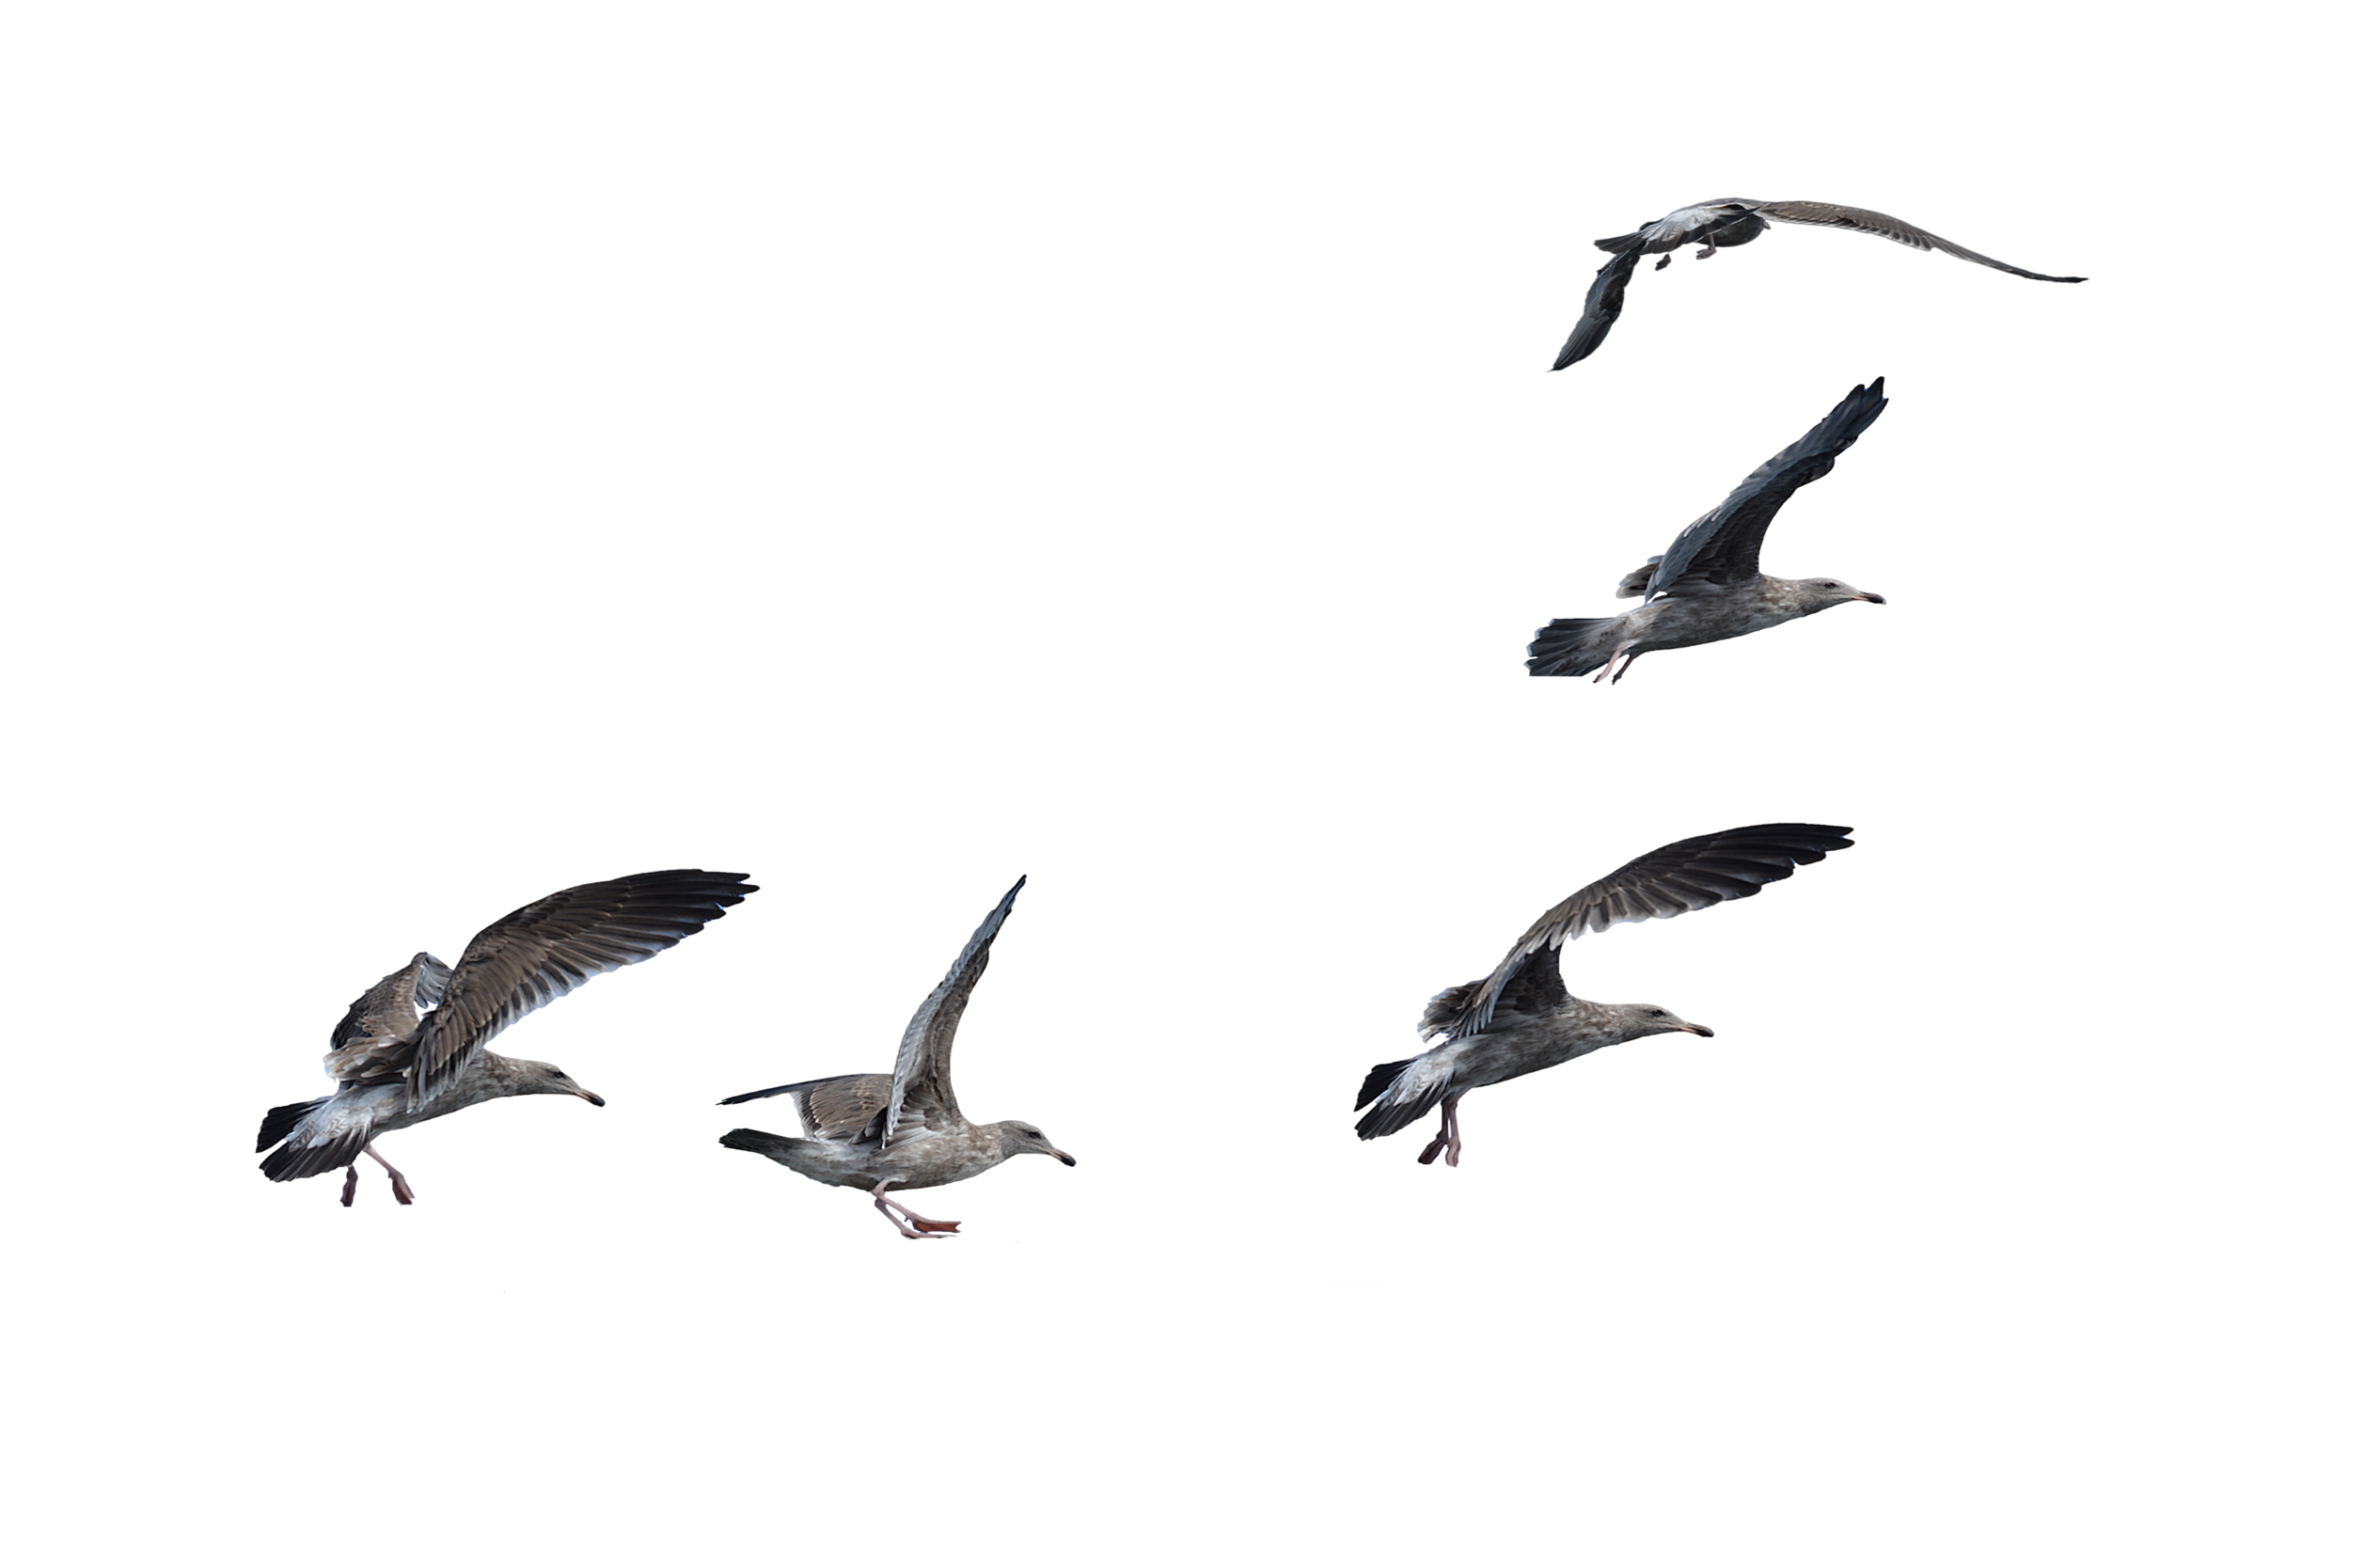 Flock of  Seagulls Landing PNG Stock Photo by annamae22